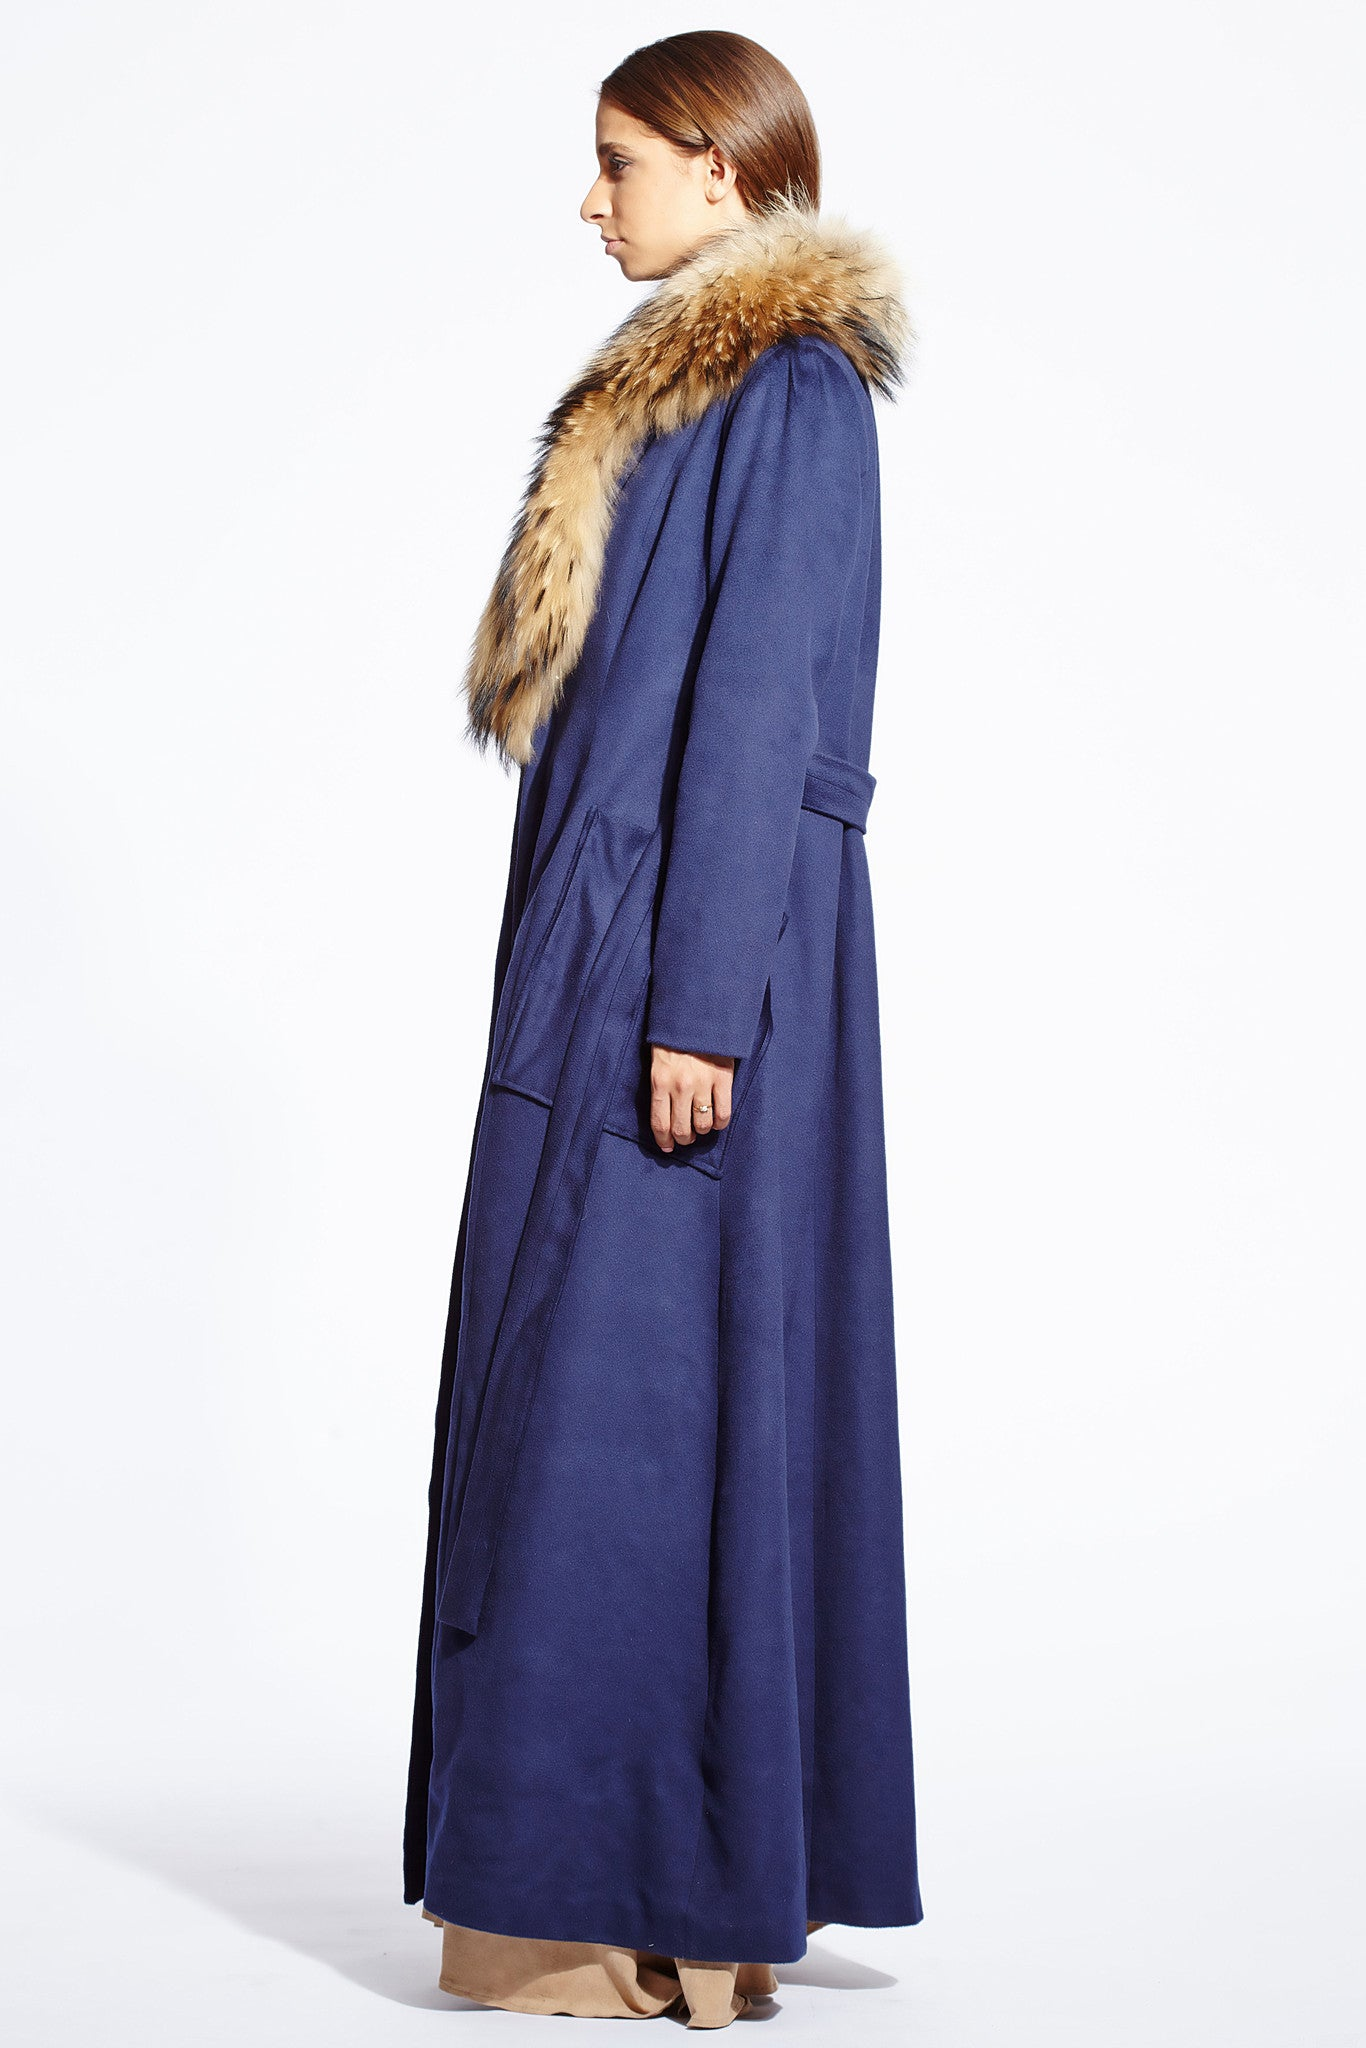 Jagger wool fur coat